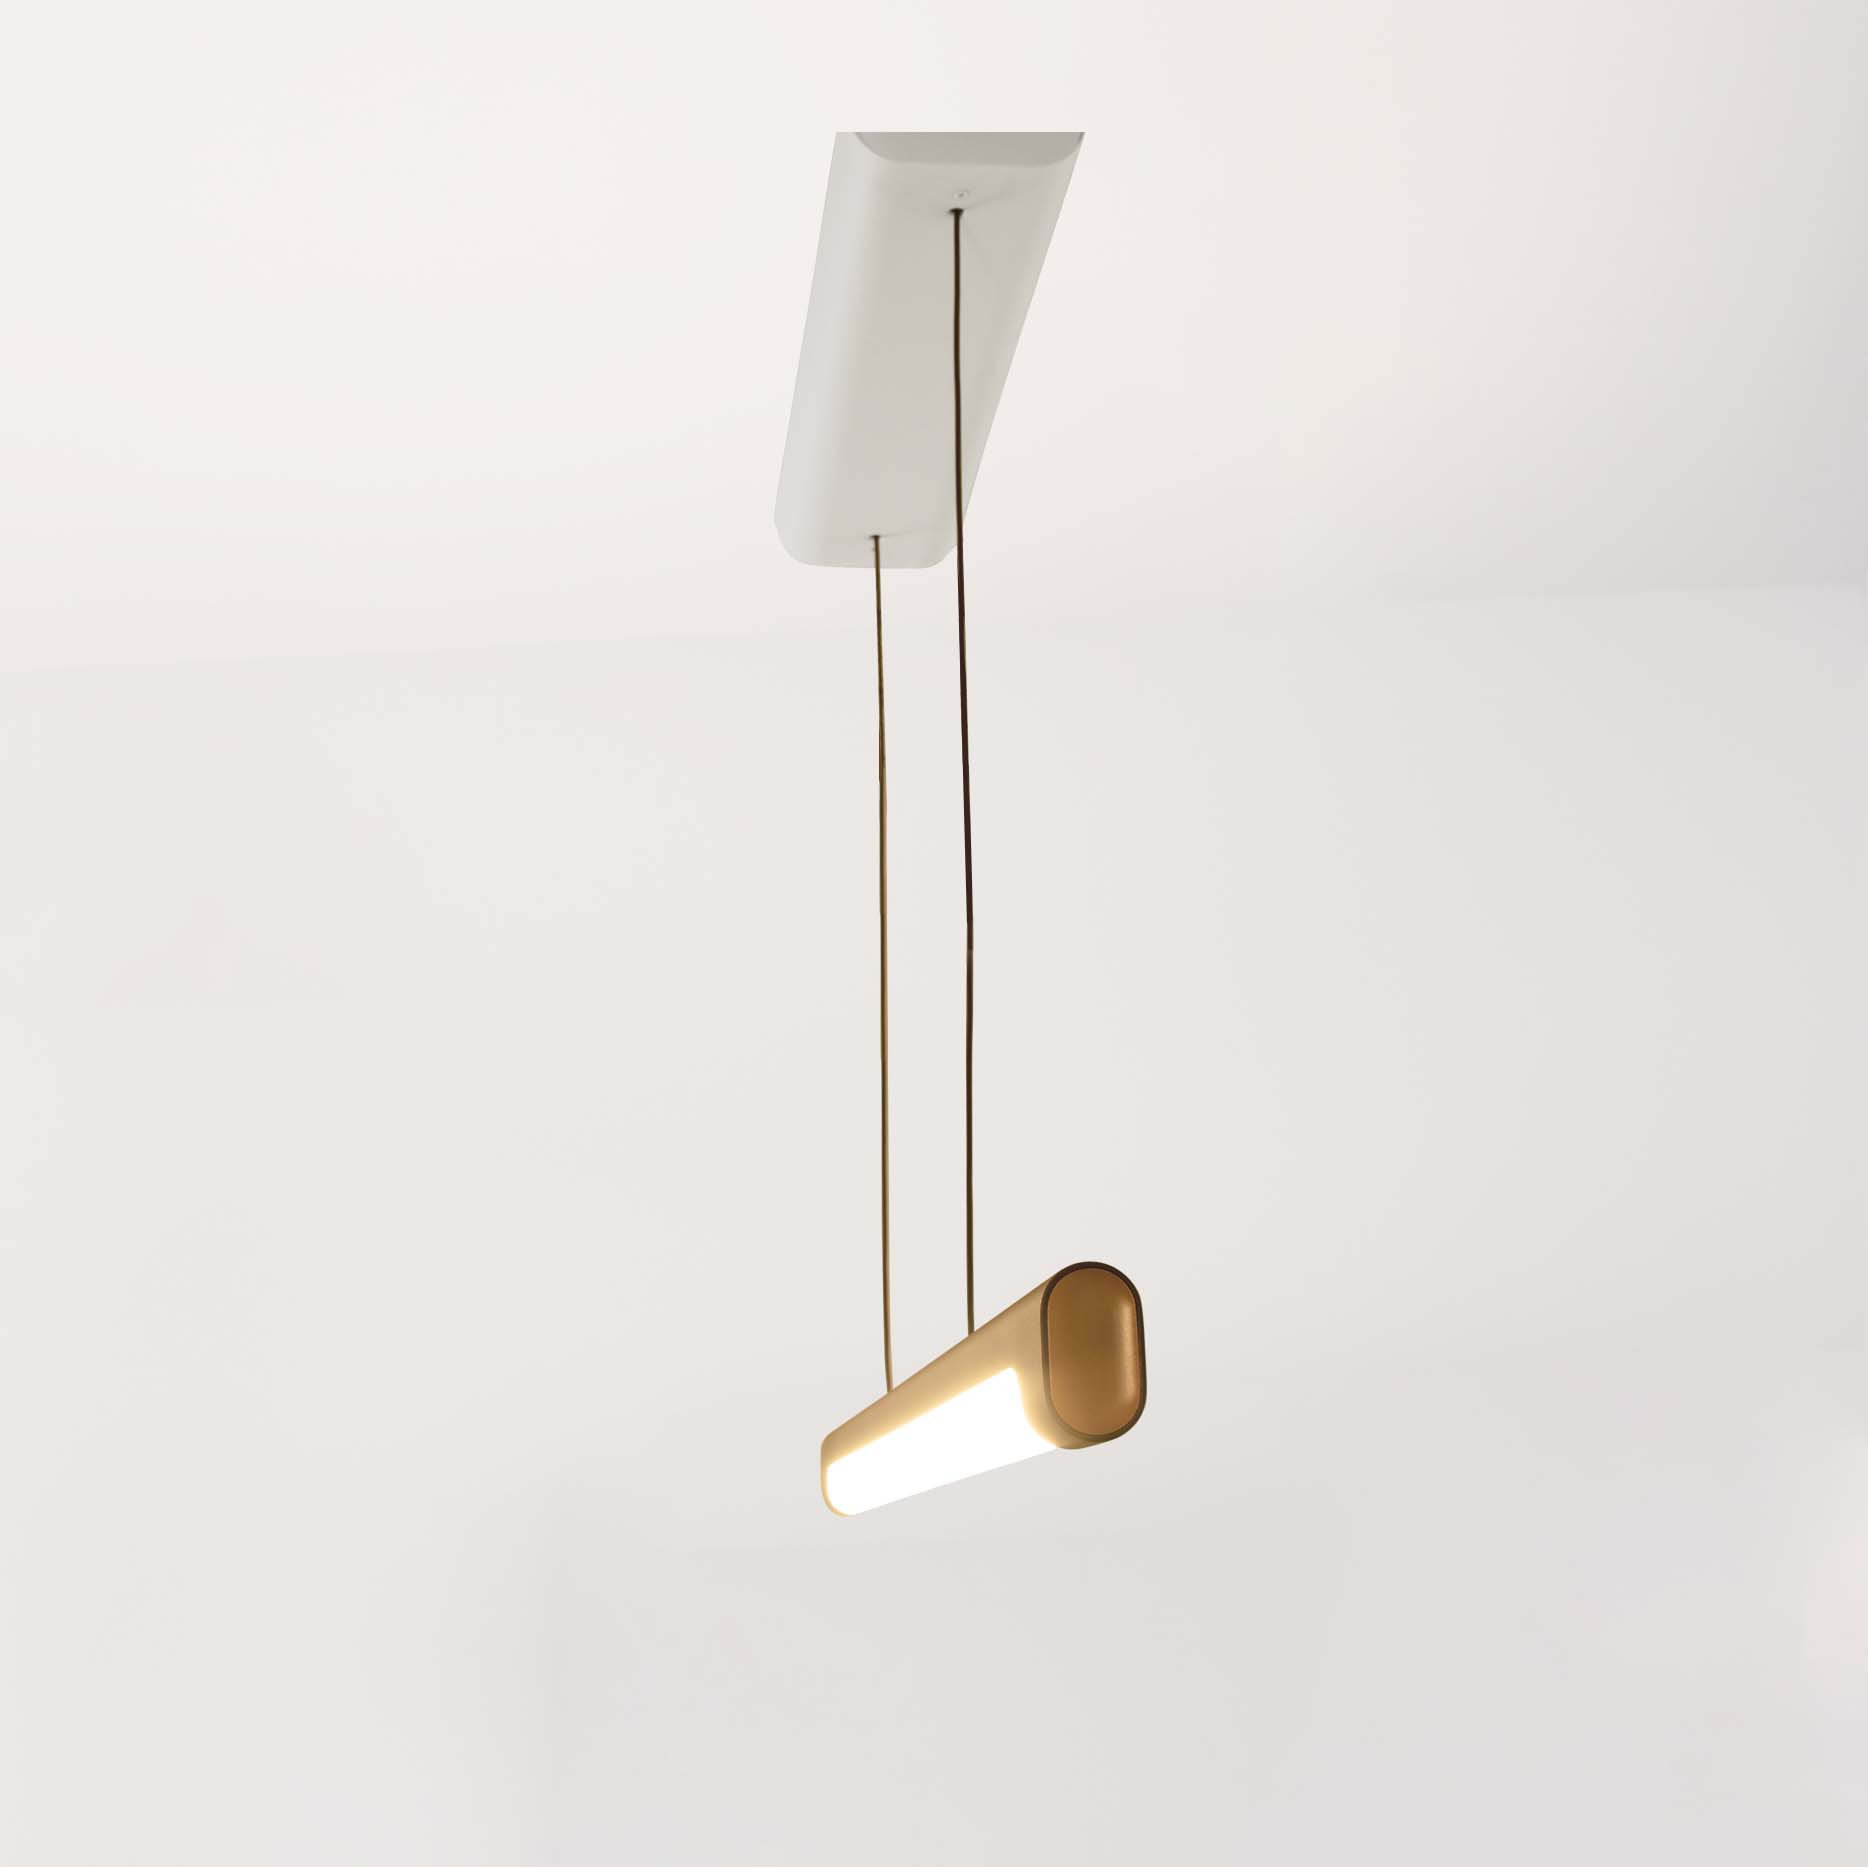 Nacelle decorative linear pendant with organic lines and high-design by Visa Lighting